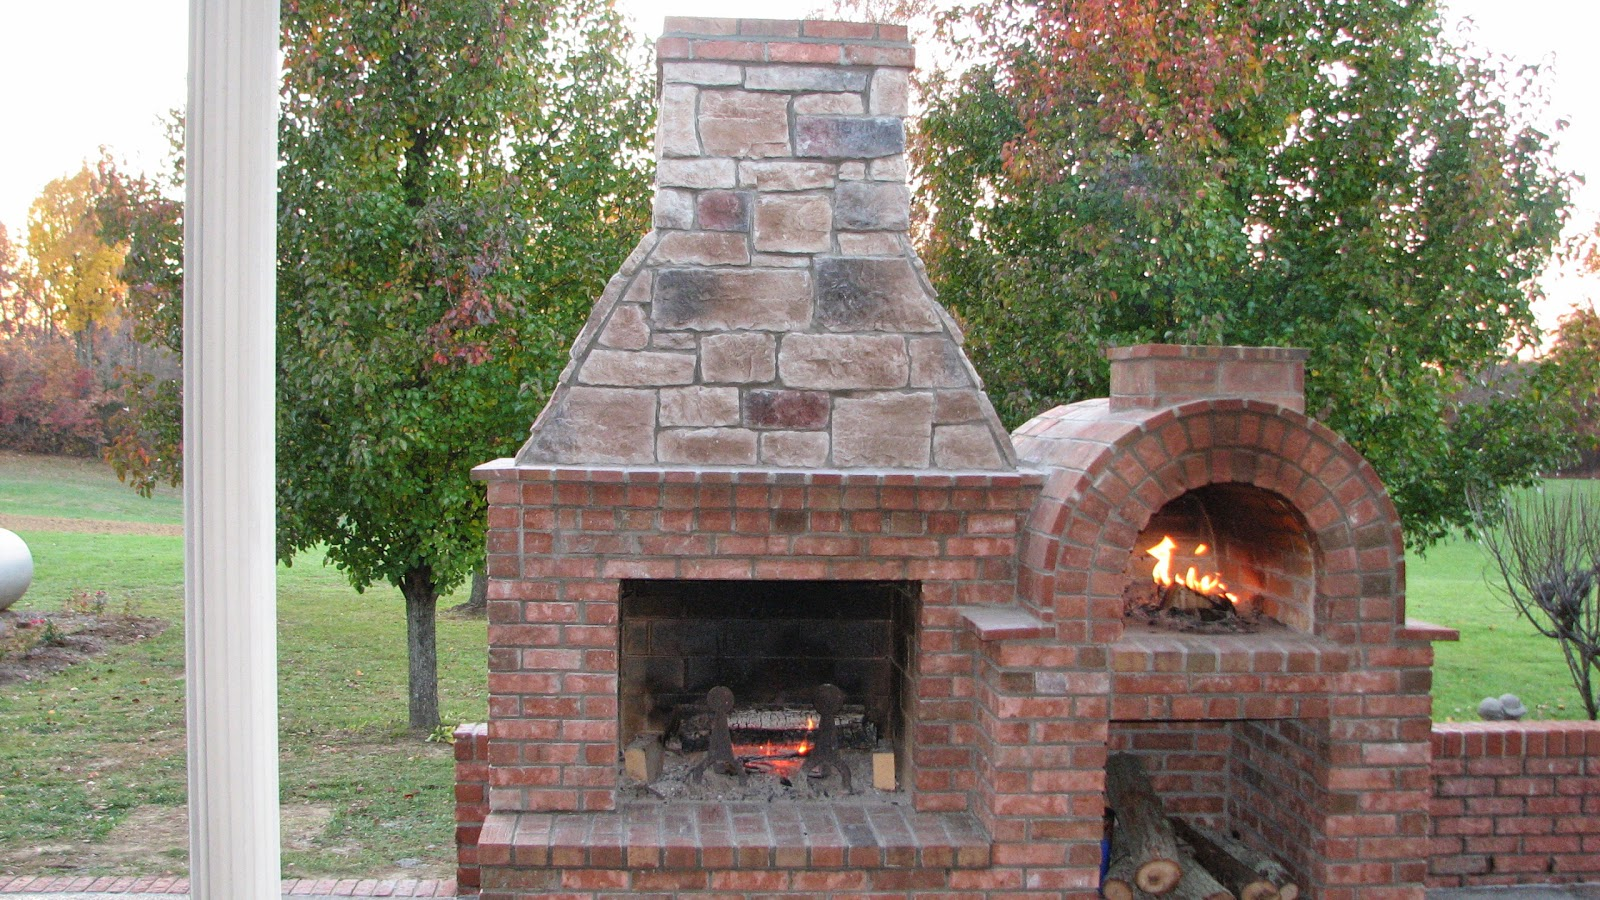 outdoor brick fireplace with oven fireplace design ideas. Black Bedroom Furniture Sets. Home Design Ideas